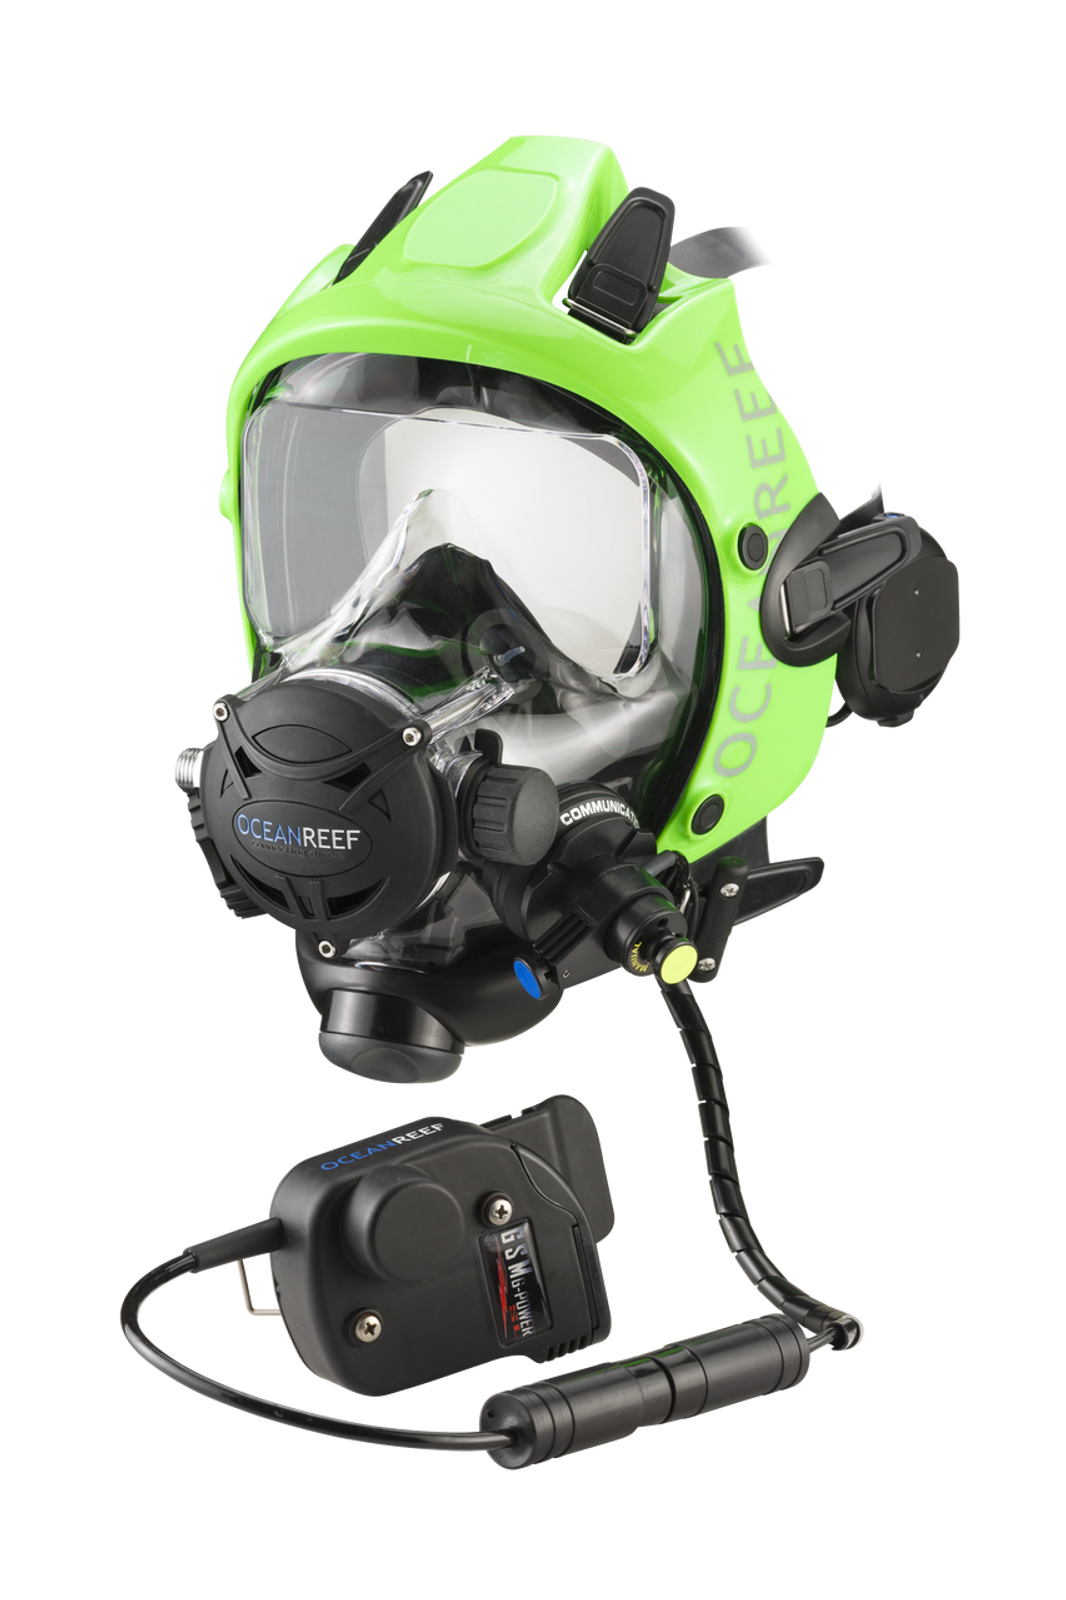 Space Extender black/green frame (an extra, not included, color option) with the GSM GPower SL - underwater communication unit  with headset (wireless)